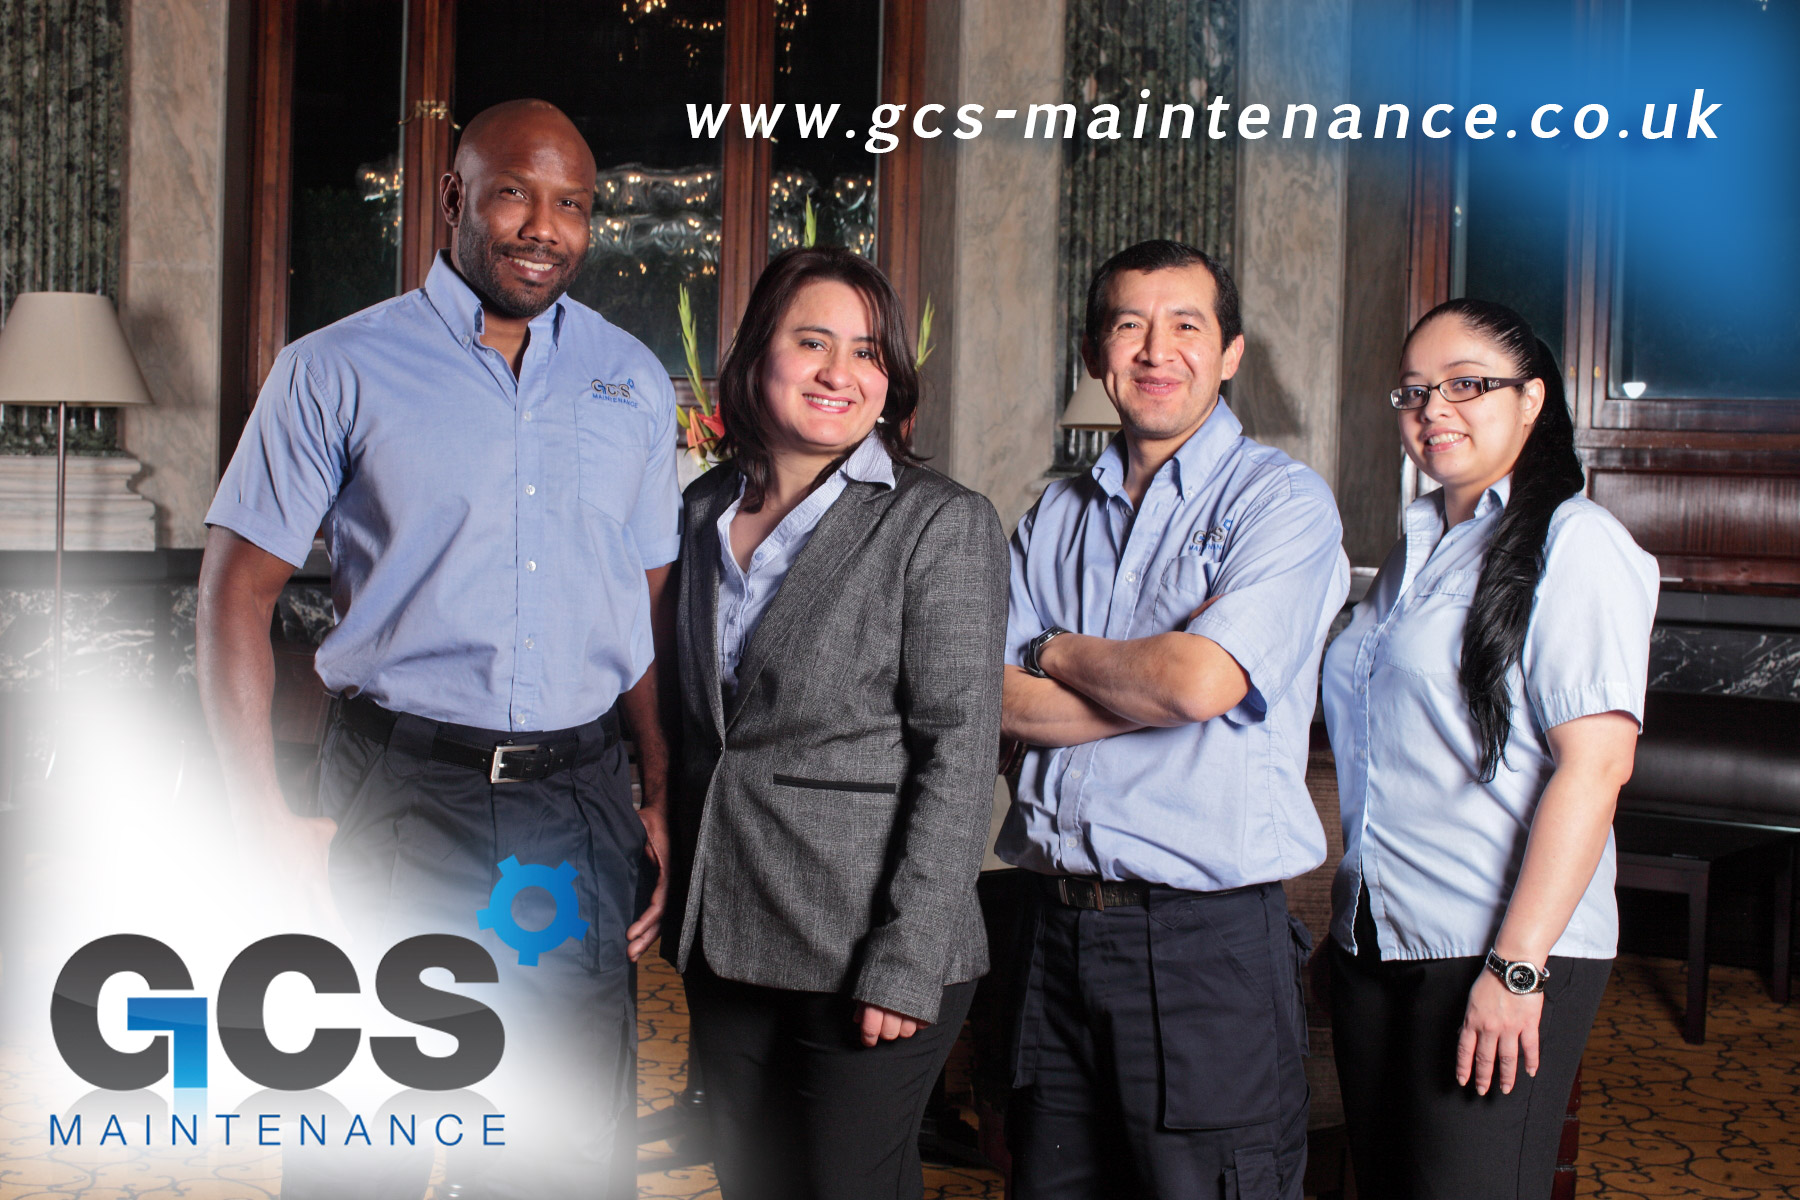 Cleaning Company Manager and Operatives